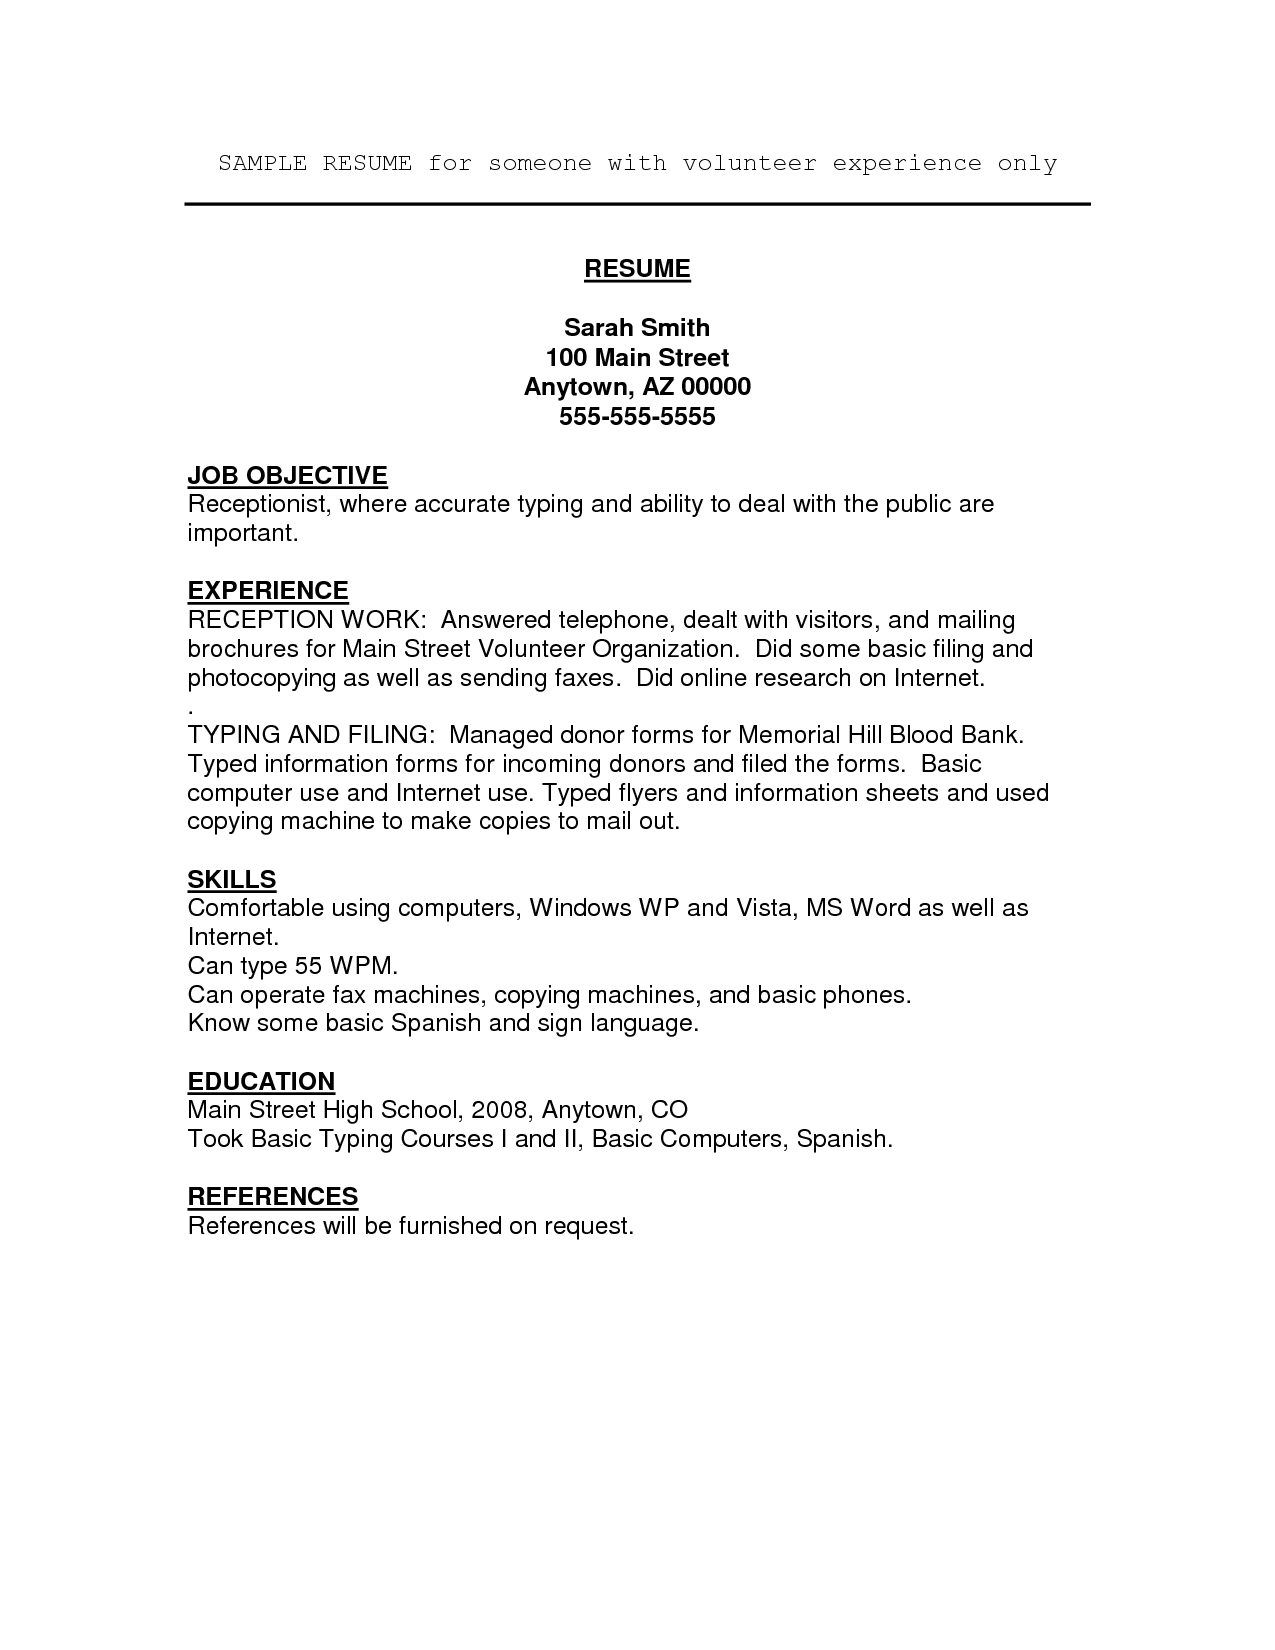 Free Volunteer Resume Templates Resume work, Basic